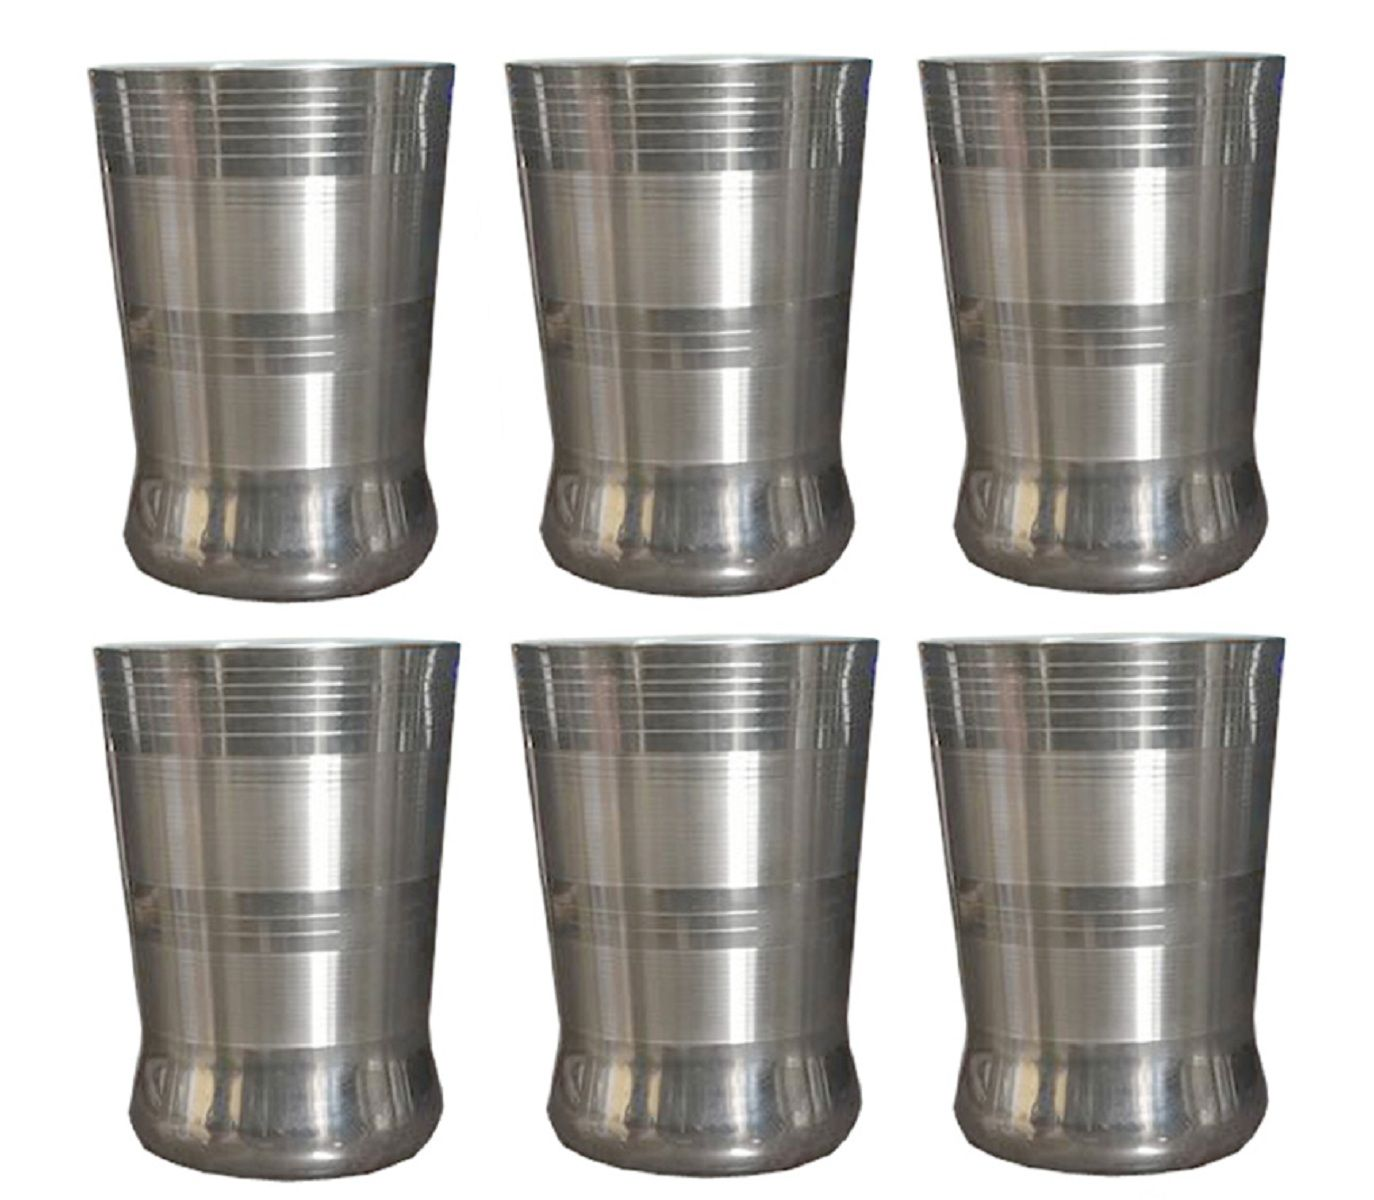 Kuber Industries™ Stainless Steel Drinking Glass/Water/Tumbler Glass set-Drinkware (Set of 6 Pieces) STEELG03